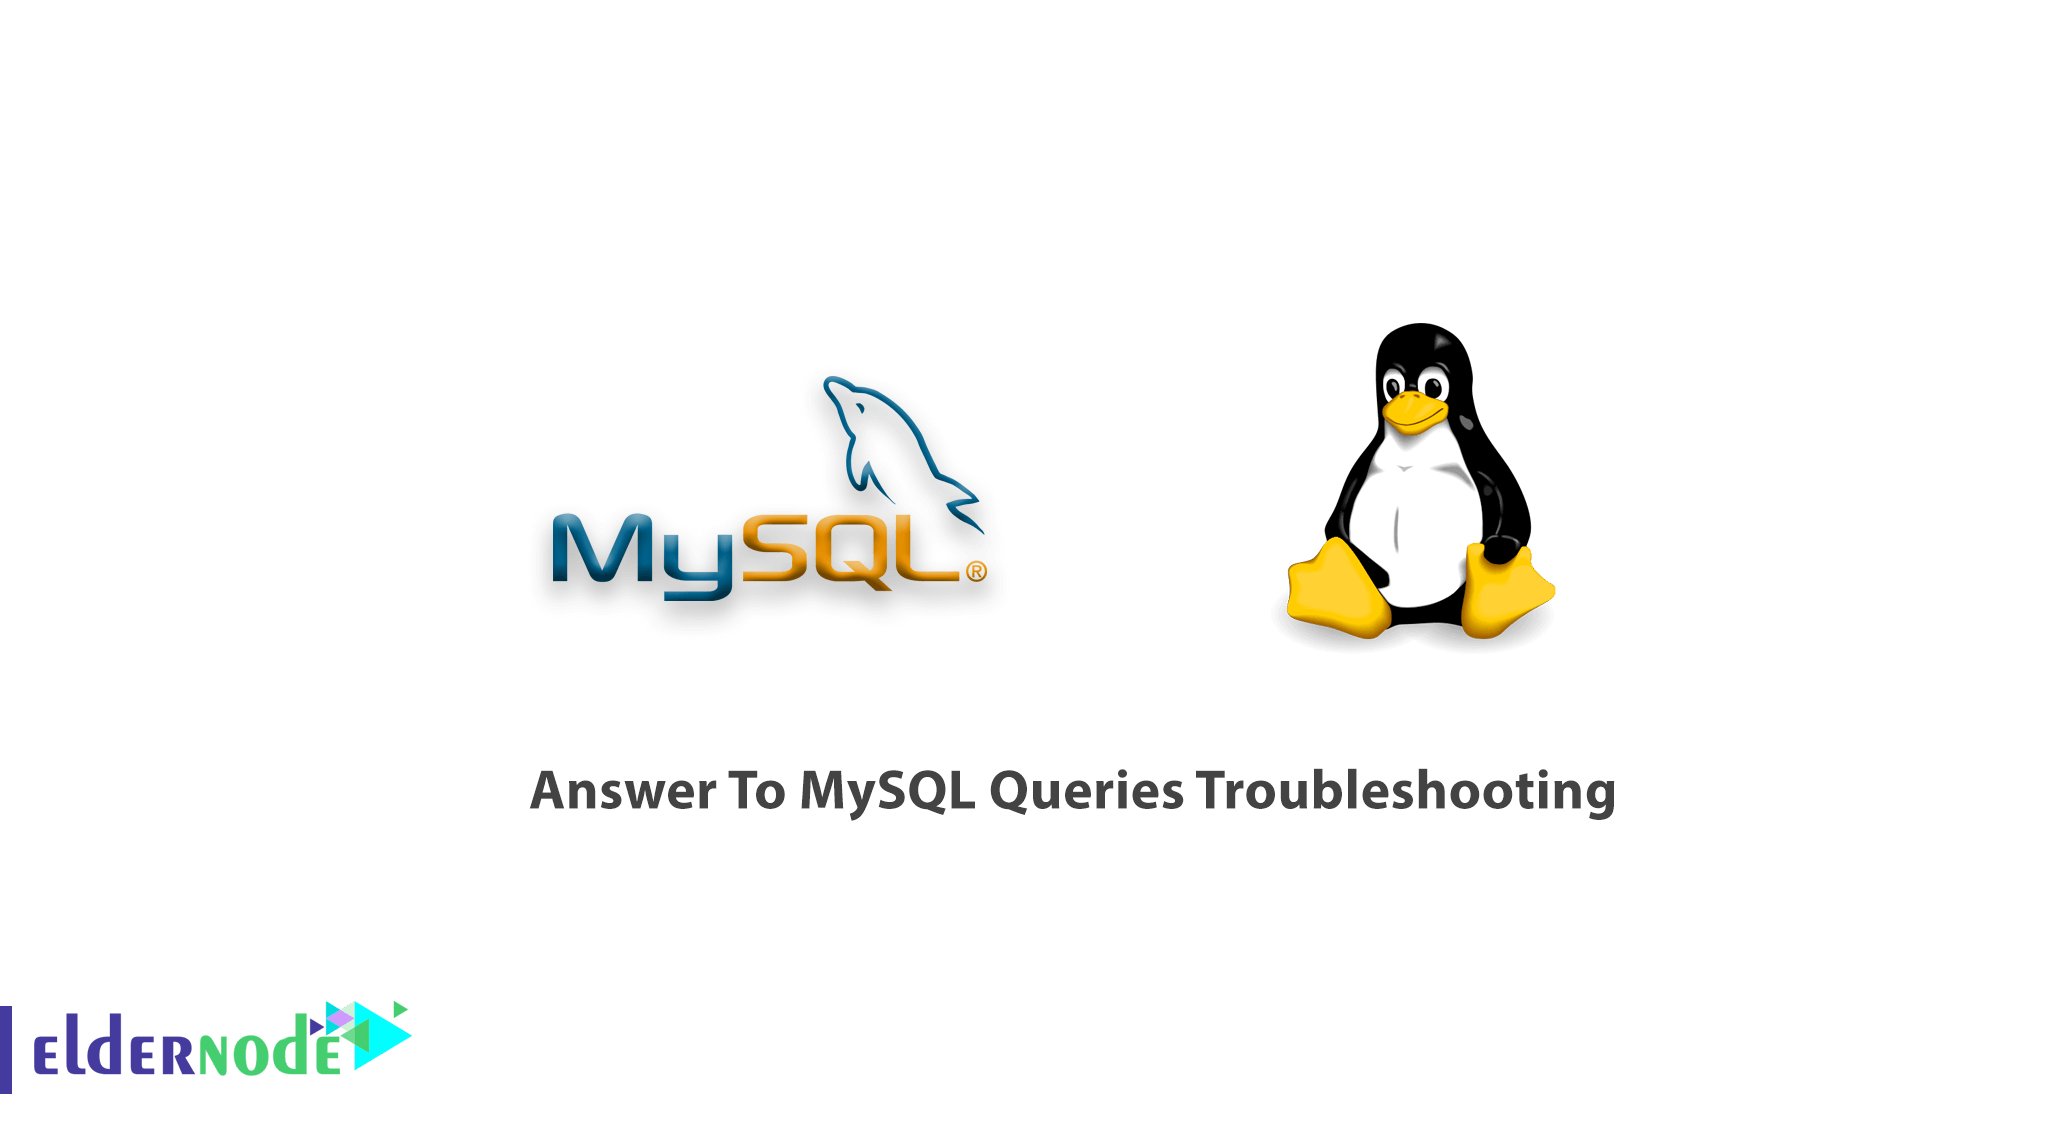 Answer To MySQL Queries Troubleshooting